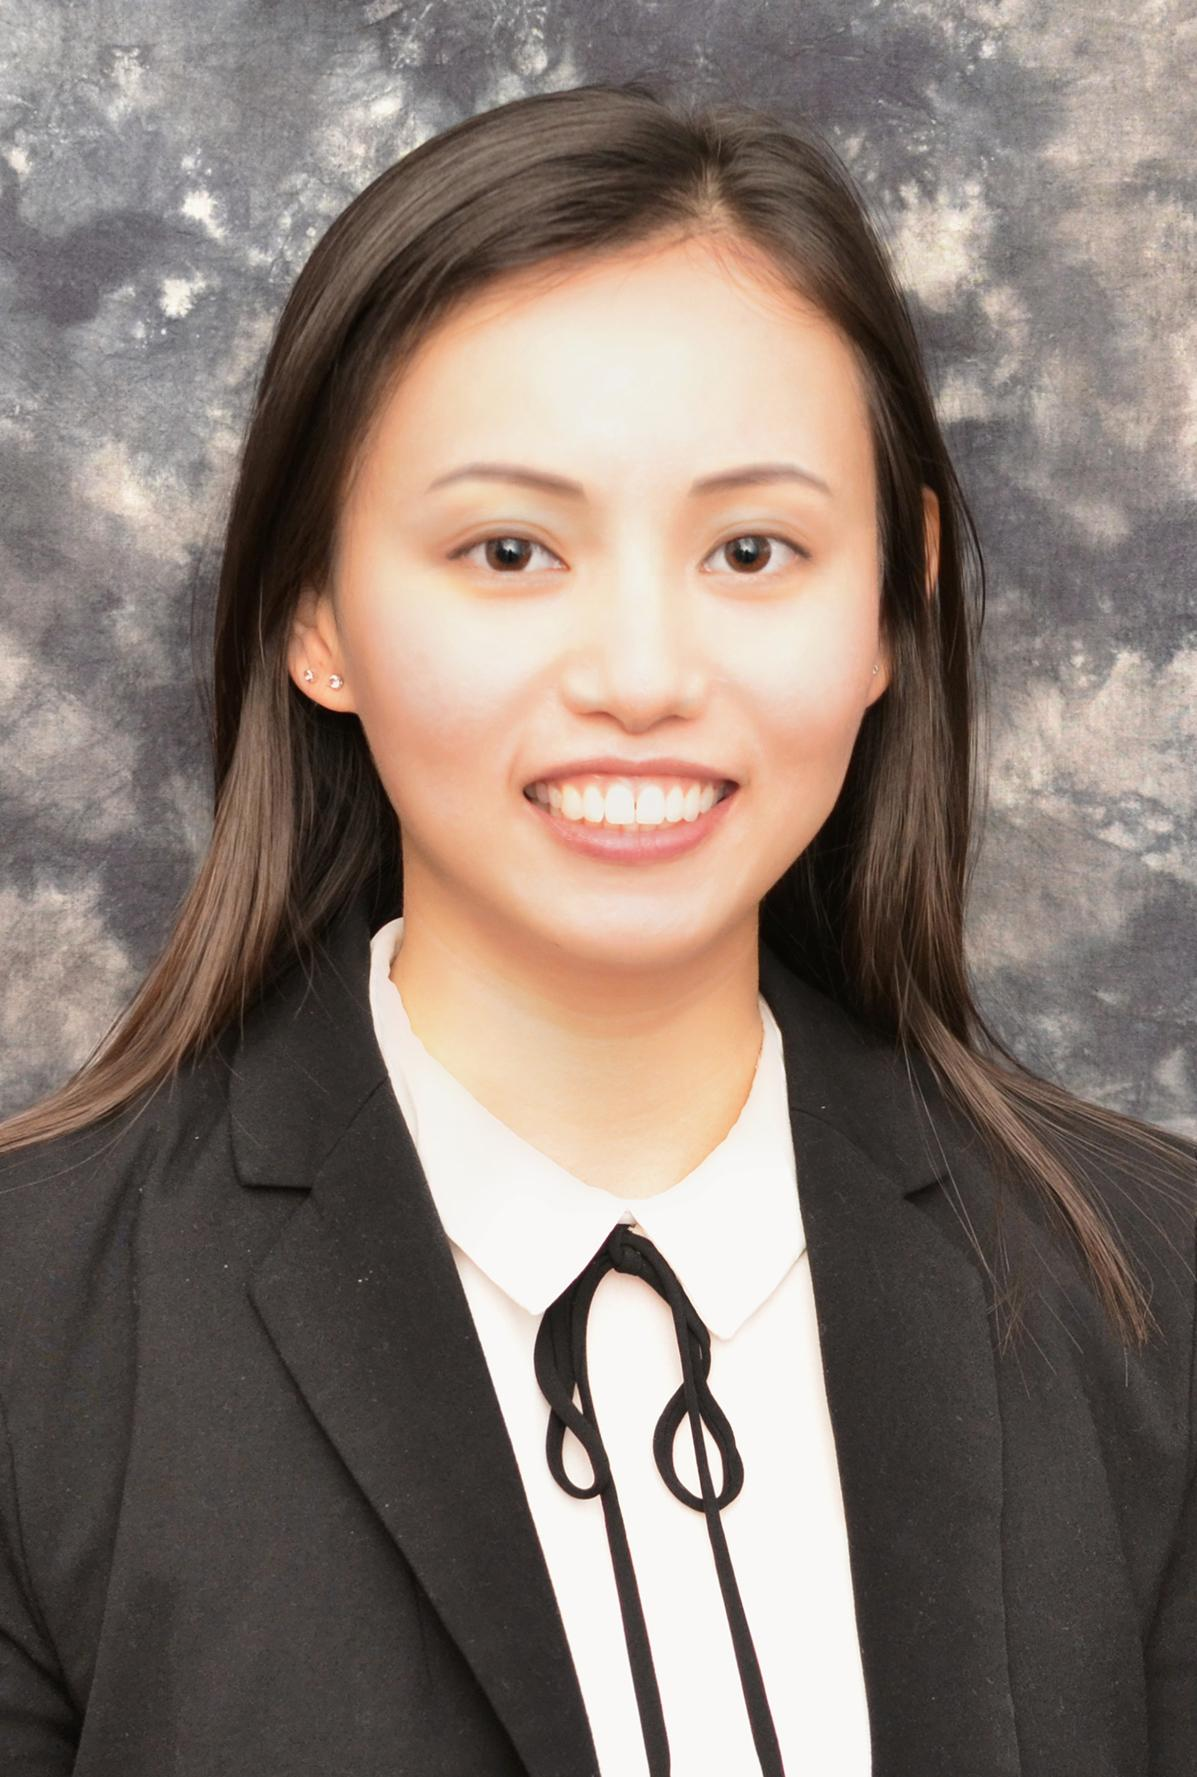 THAO N. TRAN  Your Financial Professional & Insurance Agent